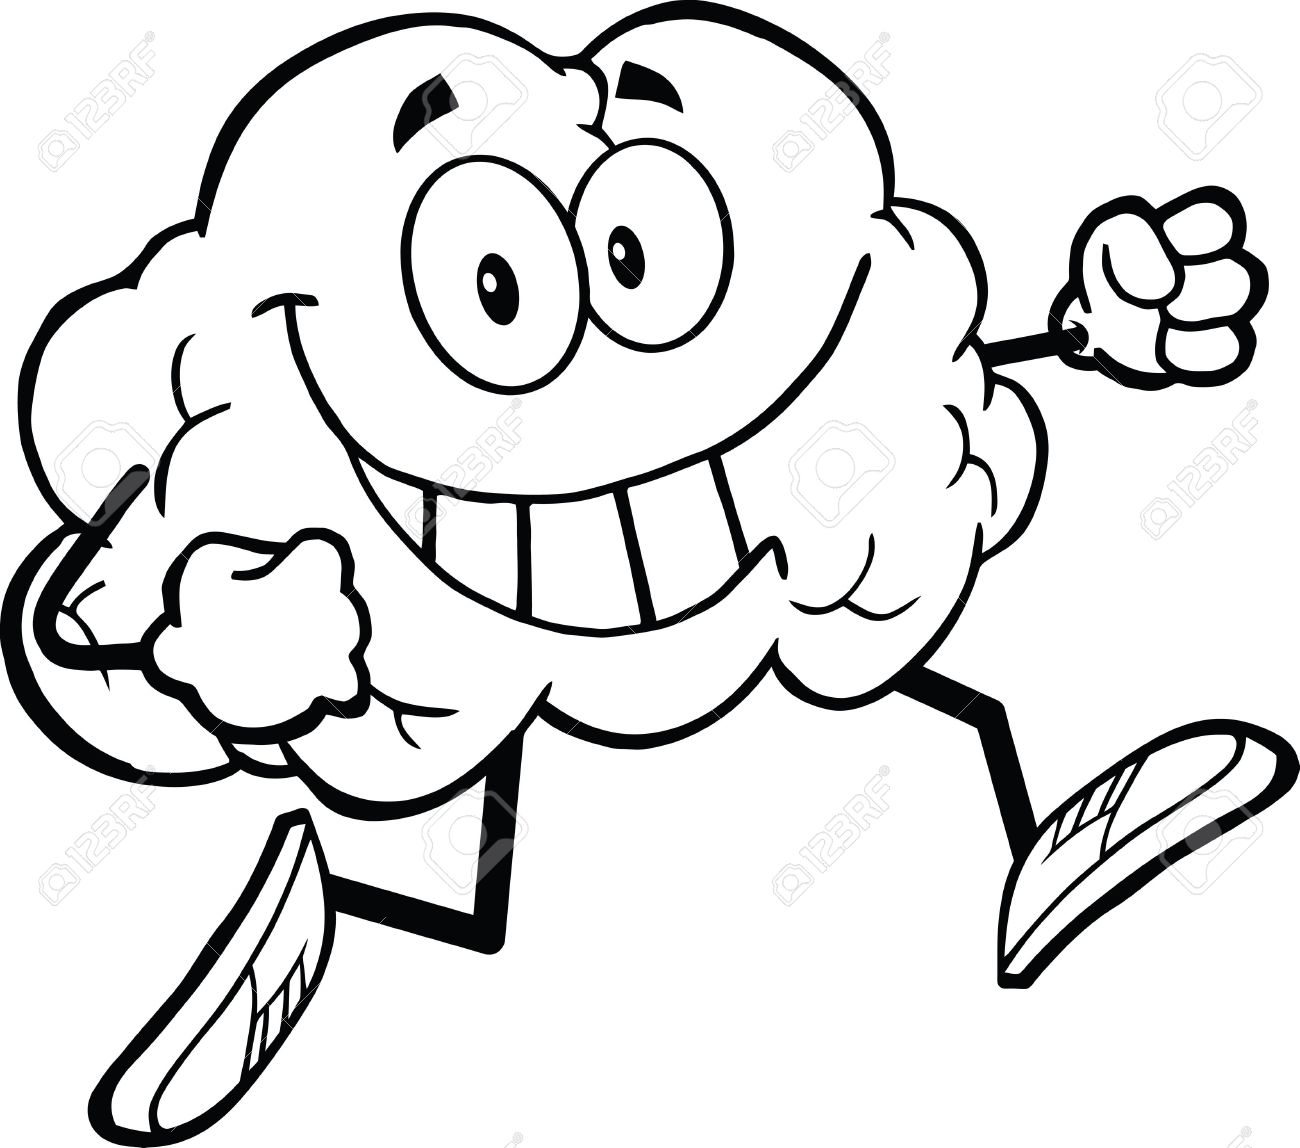 1300x1148 Cartoon Brain Drawing Outlined Healthy Brain Cartoon Character